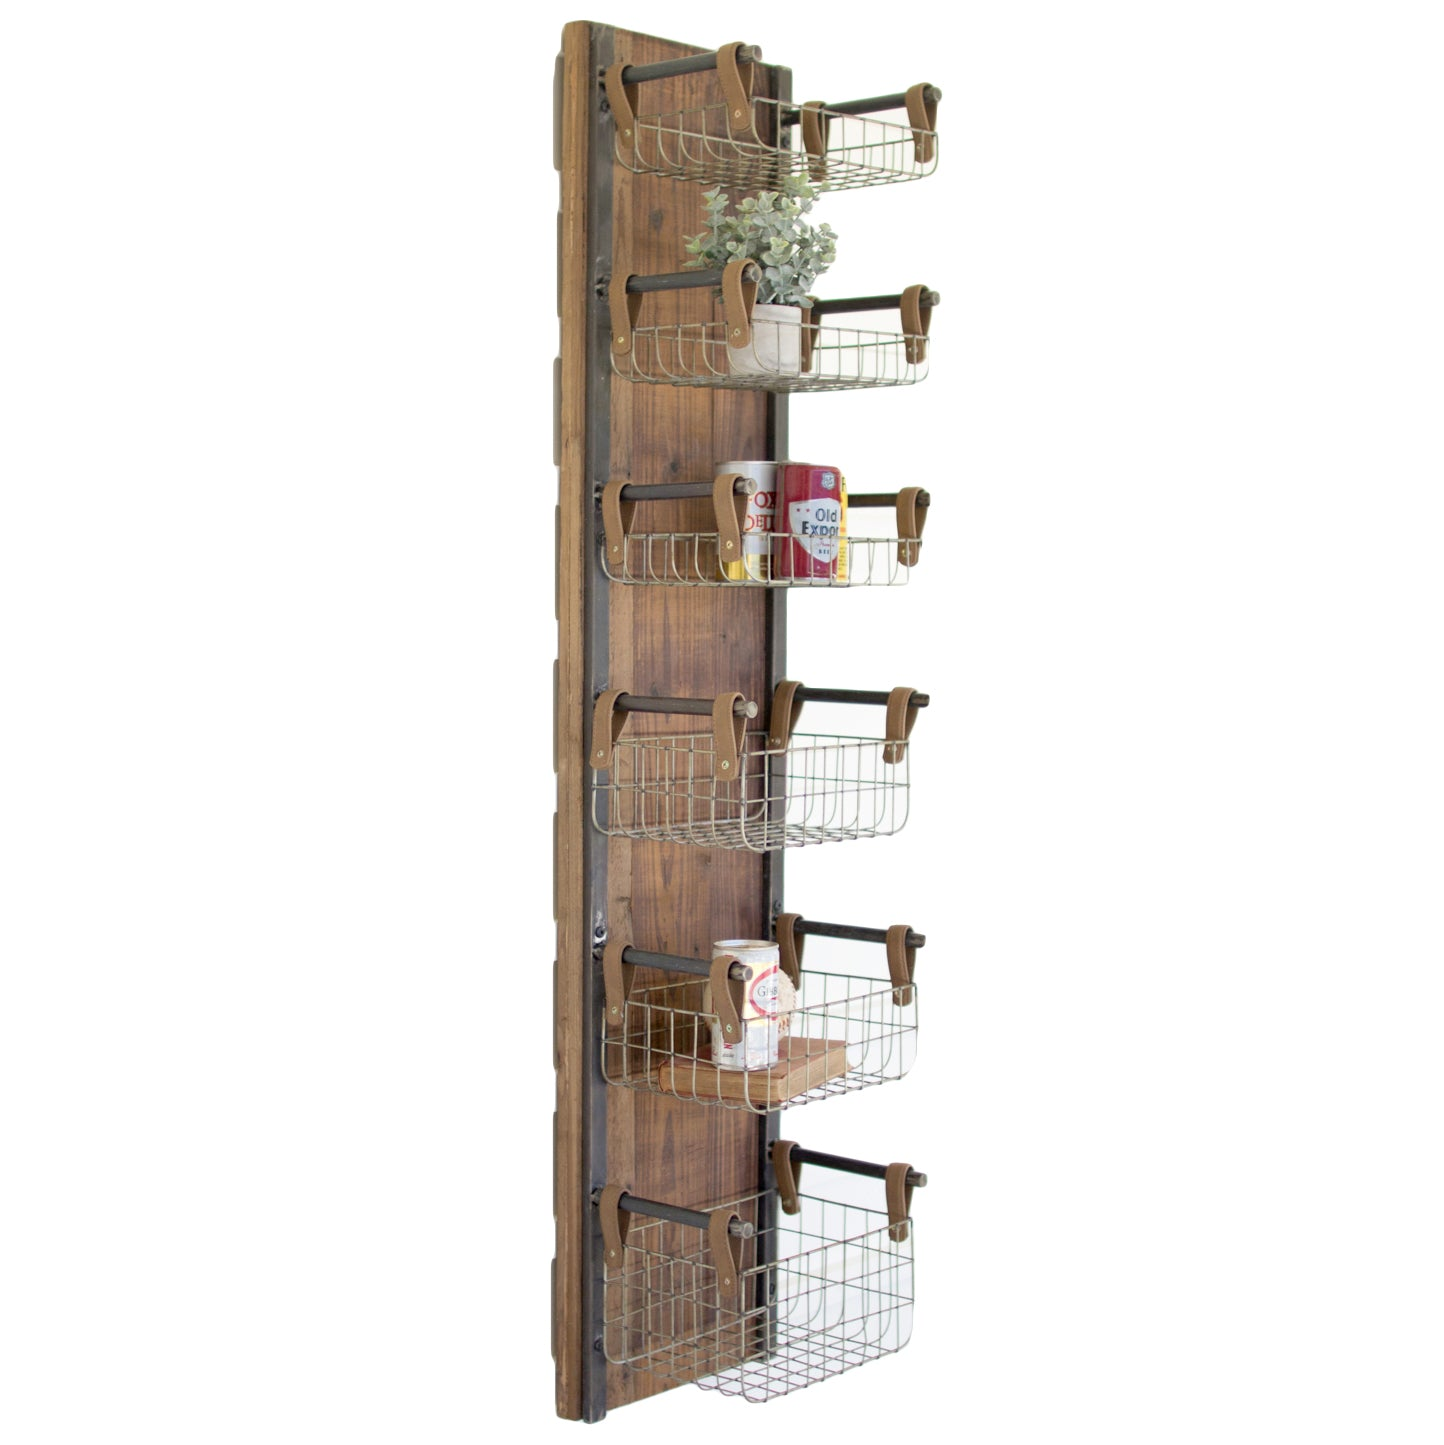 Recycled Wood & Metal Floating Wire Basket Wall Shelves